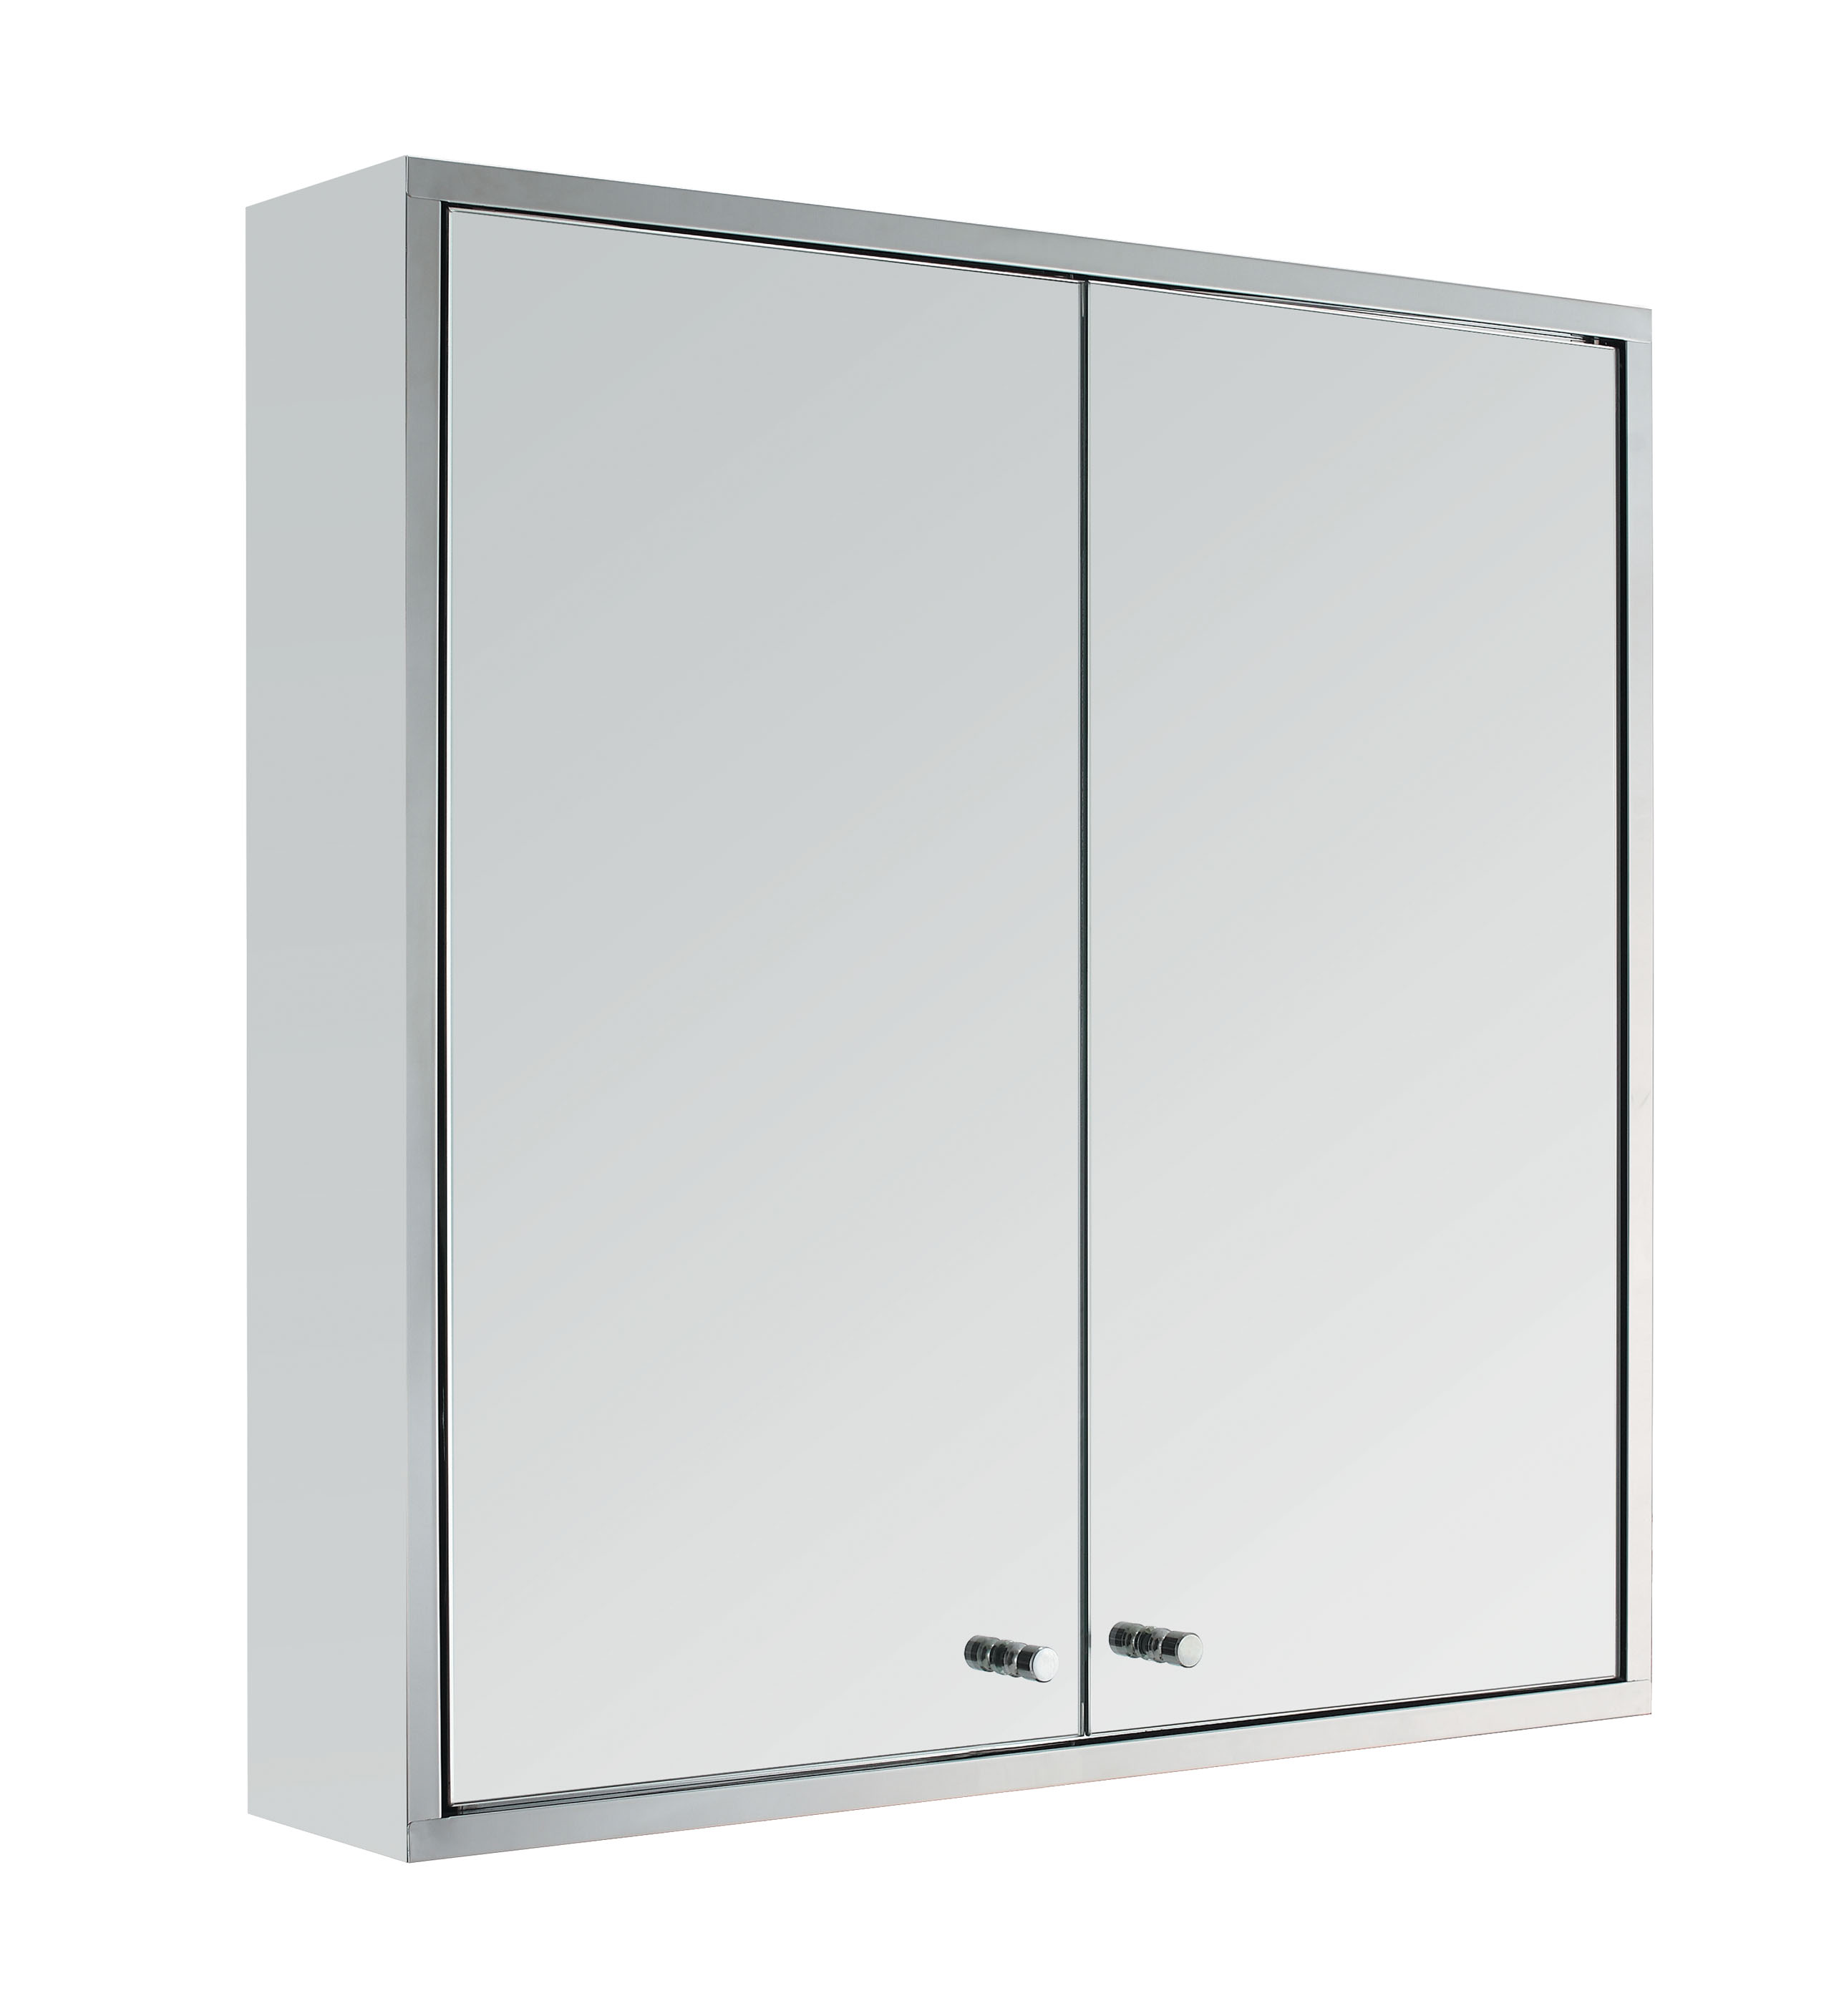 Stainless steel double door wall mount bathroom cabinet storage cupboard mirror ebay for Bathroom mirror cupboard